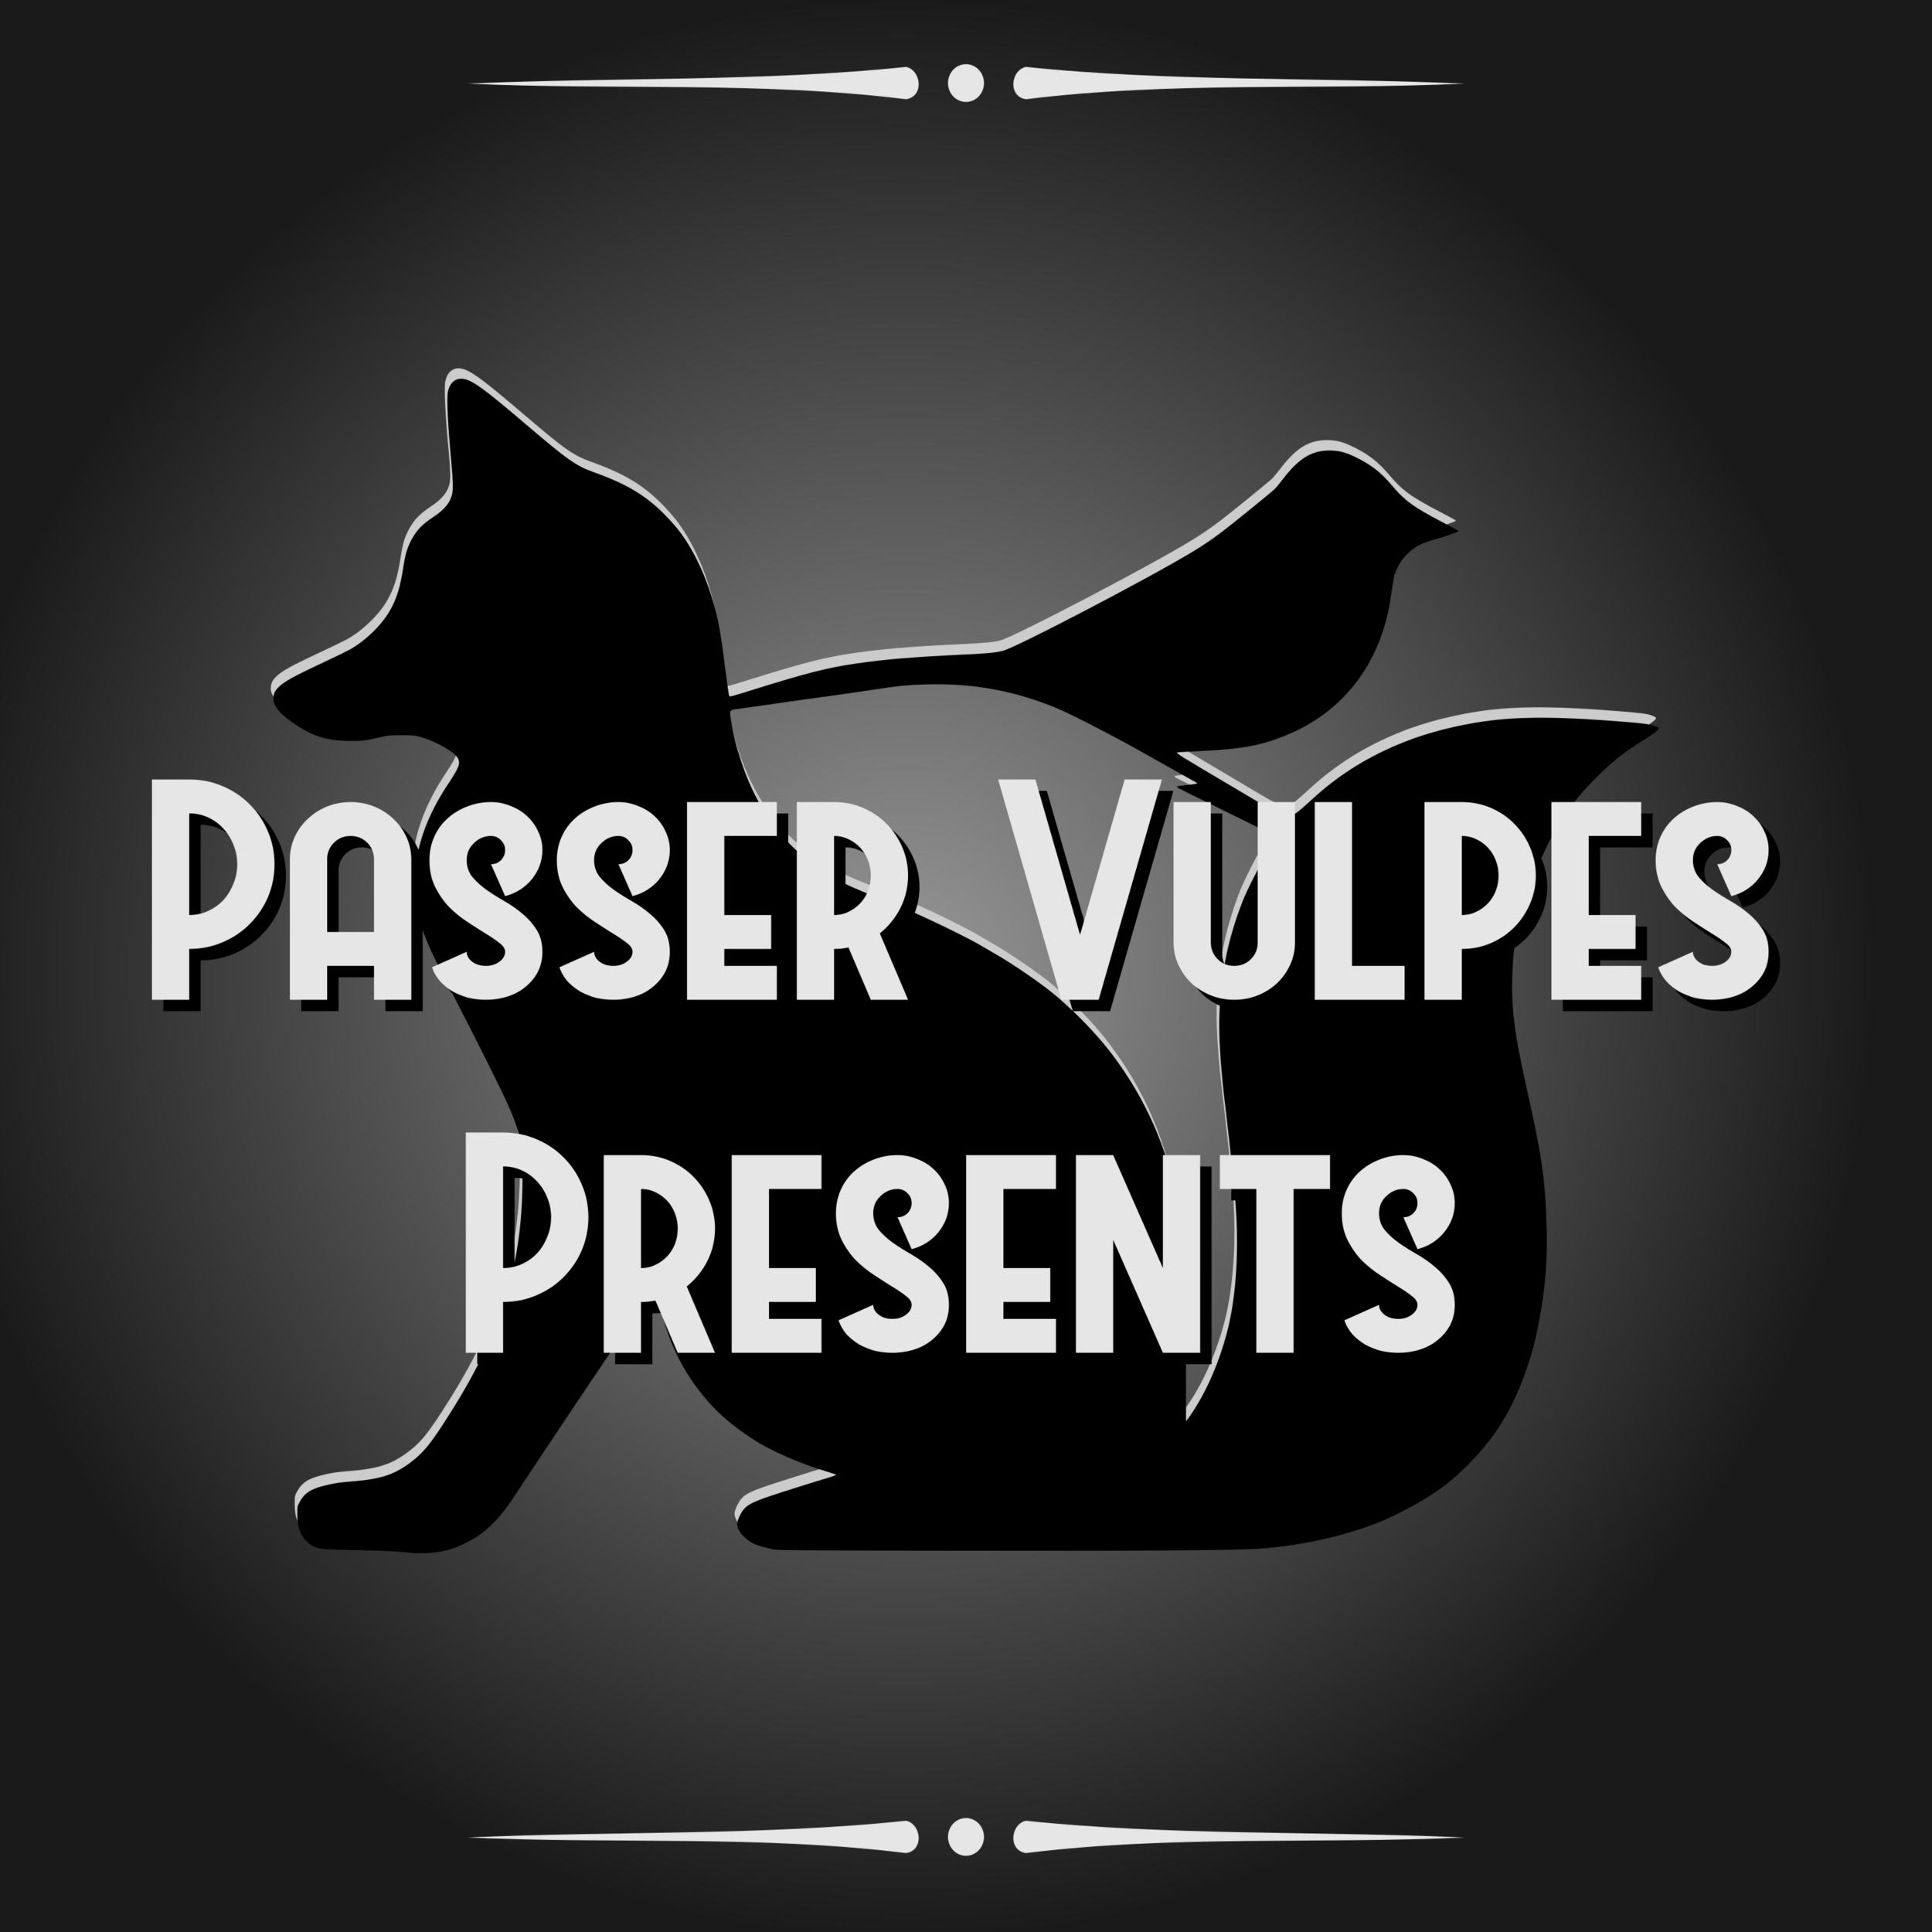 The cover art for Passer Vulpes Productions. It contains the Passer Vulpes Logo in black and white, on a grey background that makes it look like it is a part of an old silent movie.